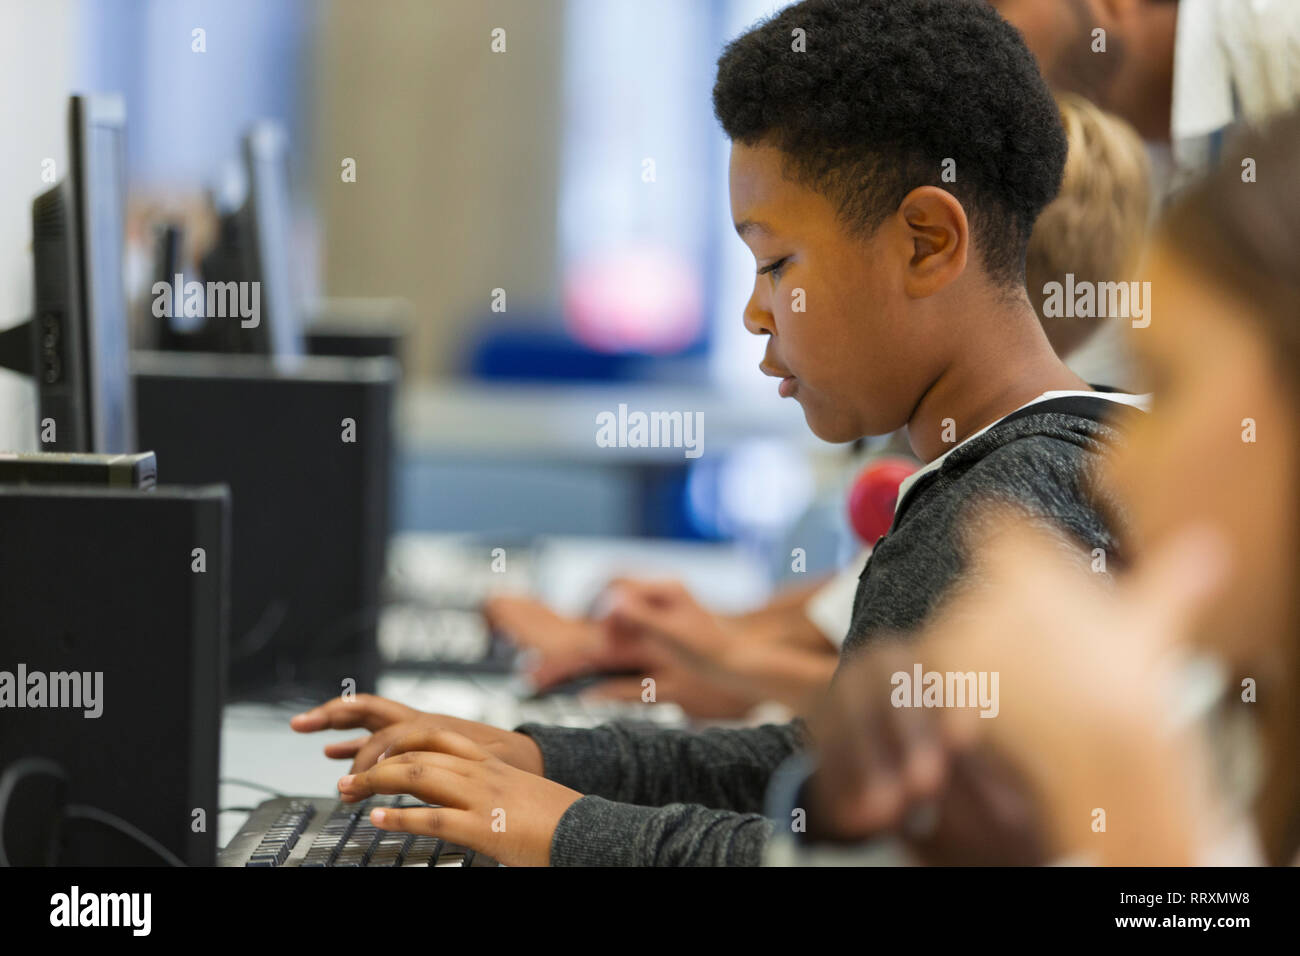 Focused junior high boy student using computer in computer lab Stock Photo